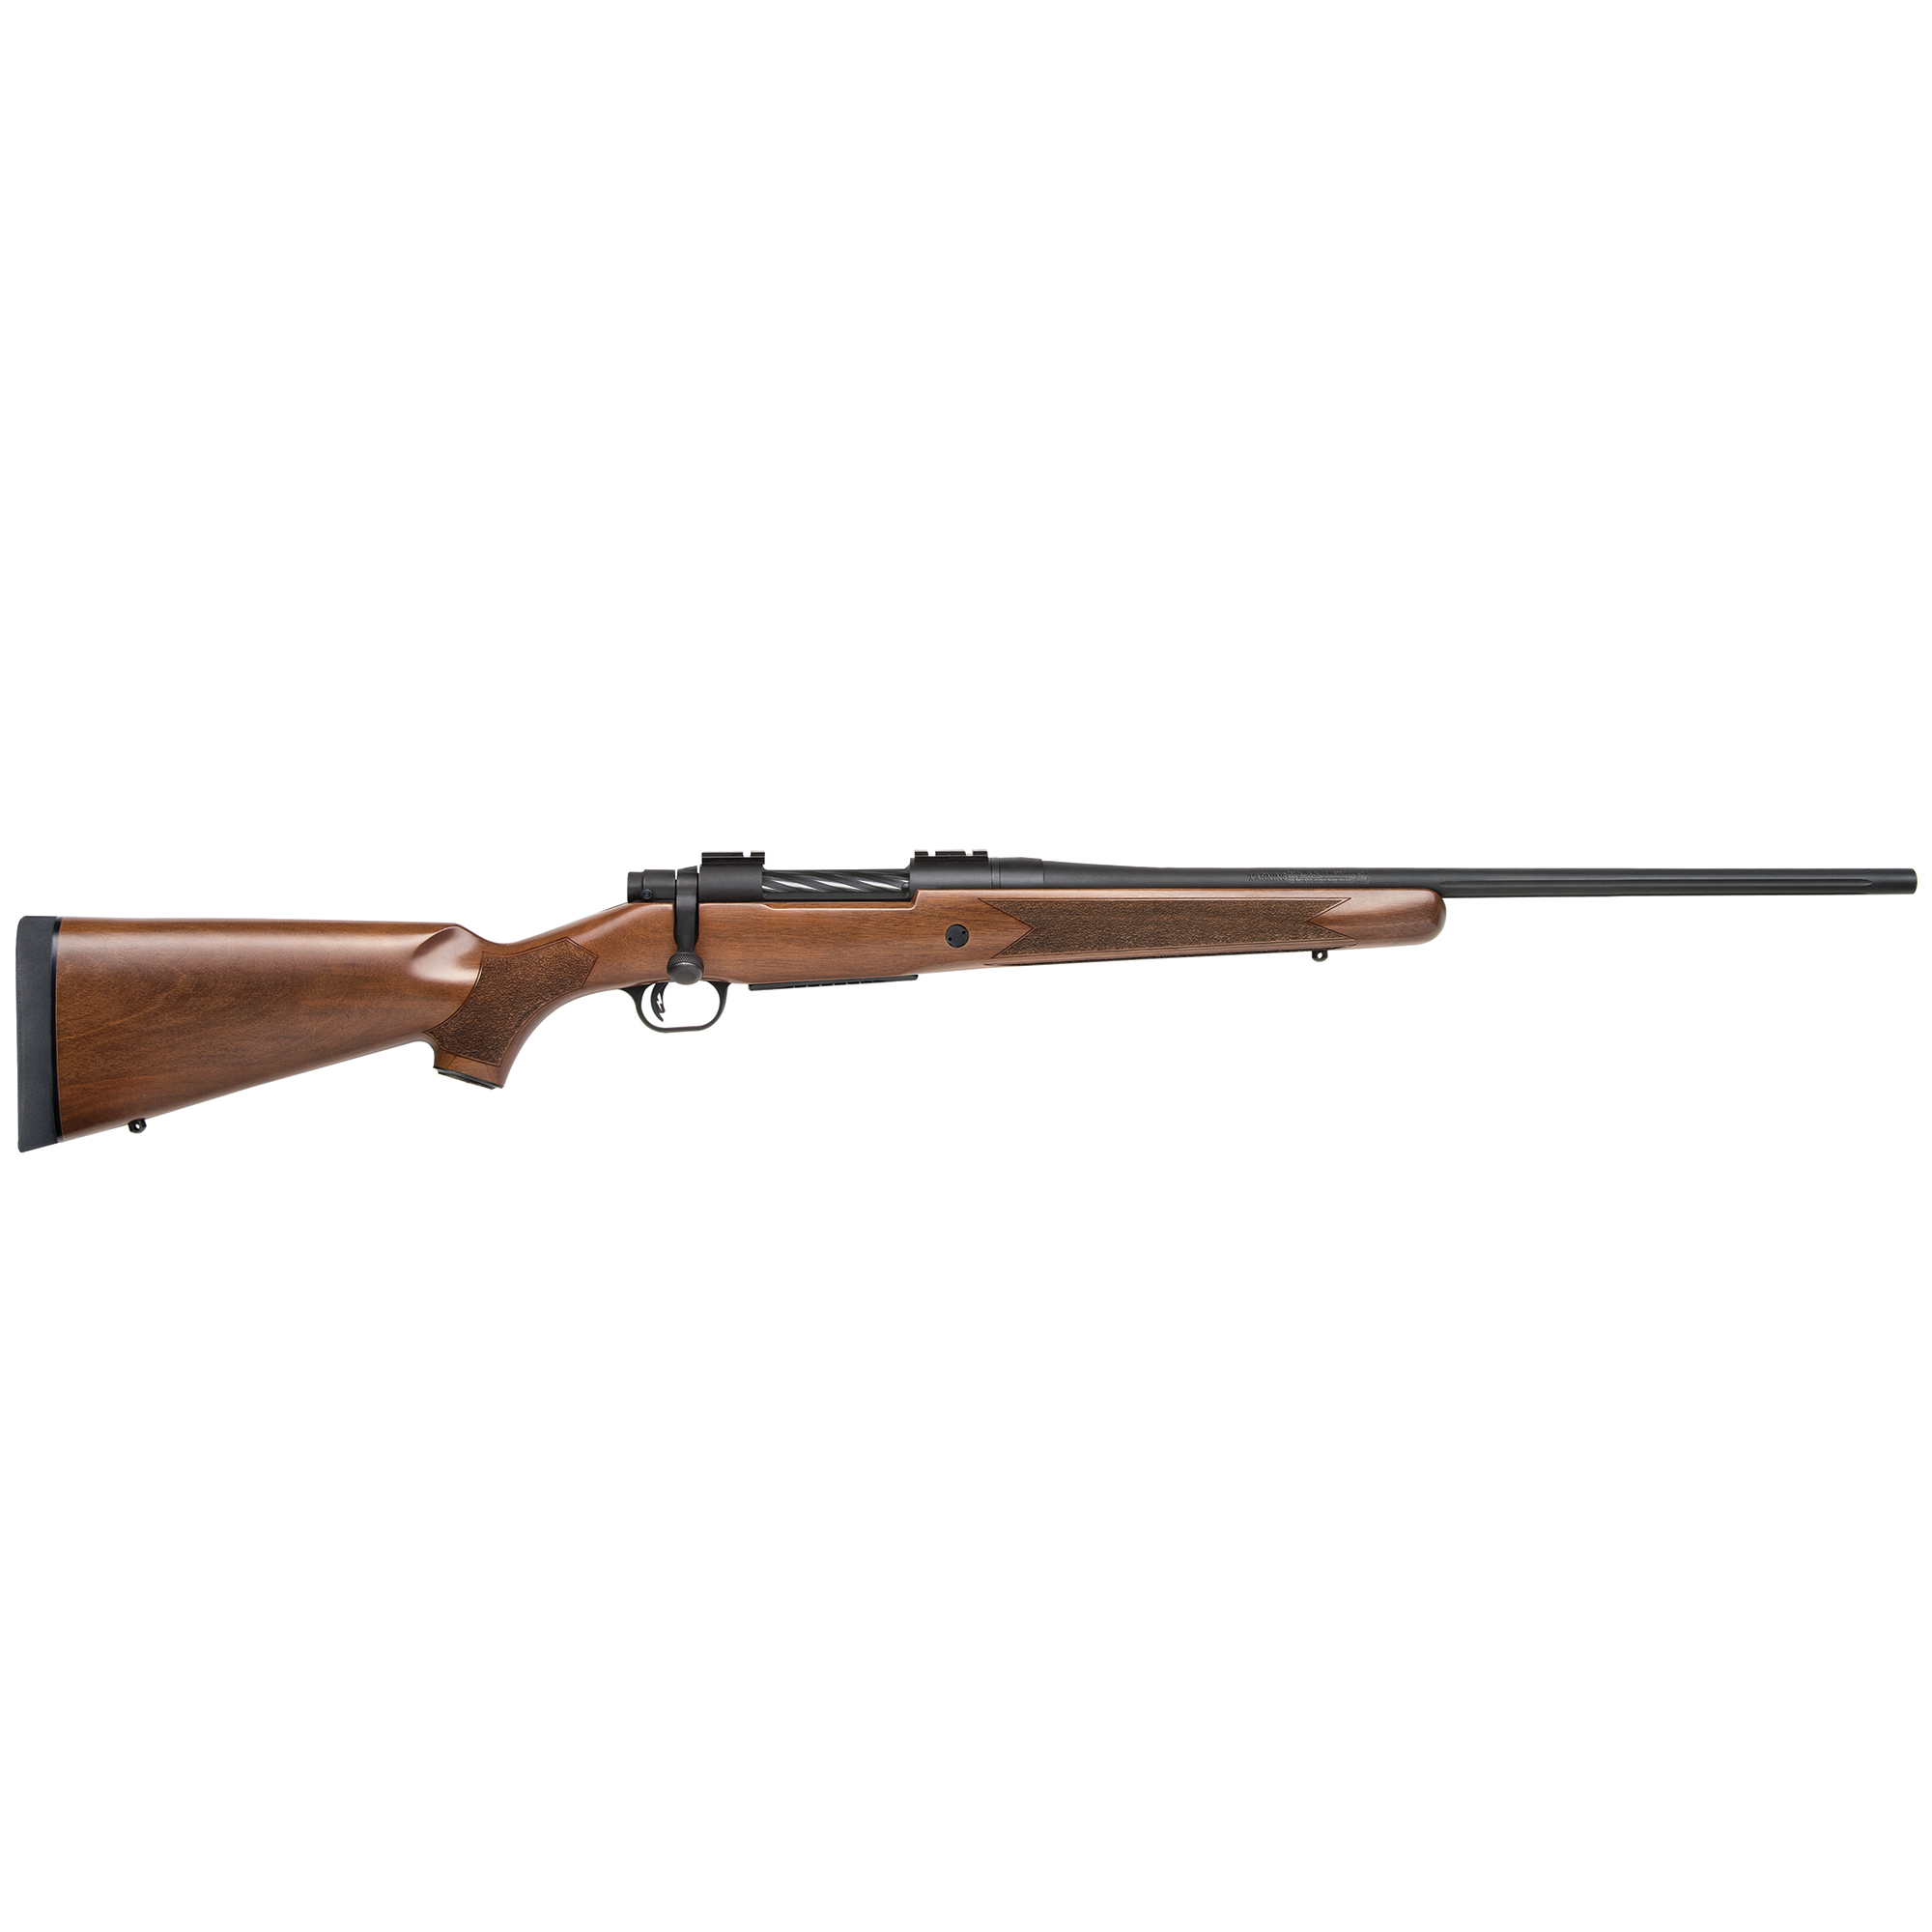 Mossberg Patriot Walnut Centerfire Rifle, .25-06 Rem.